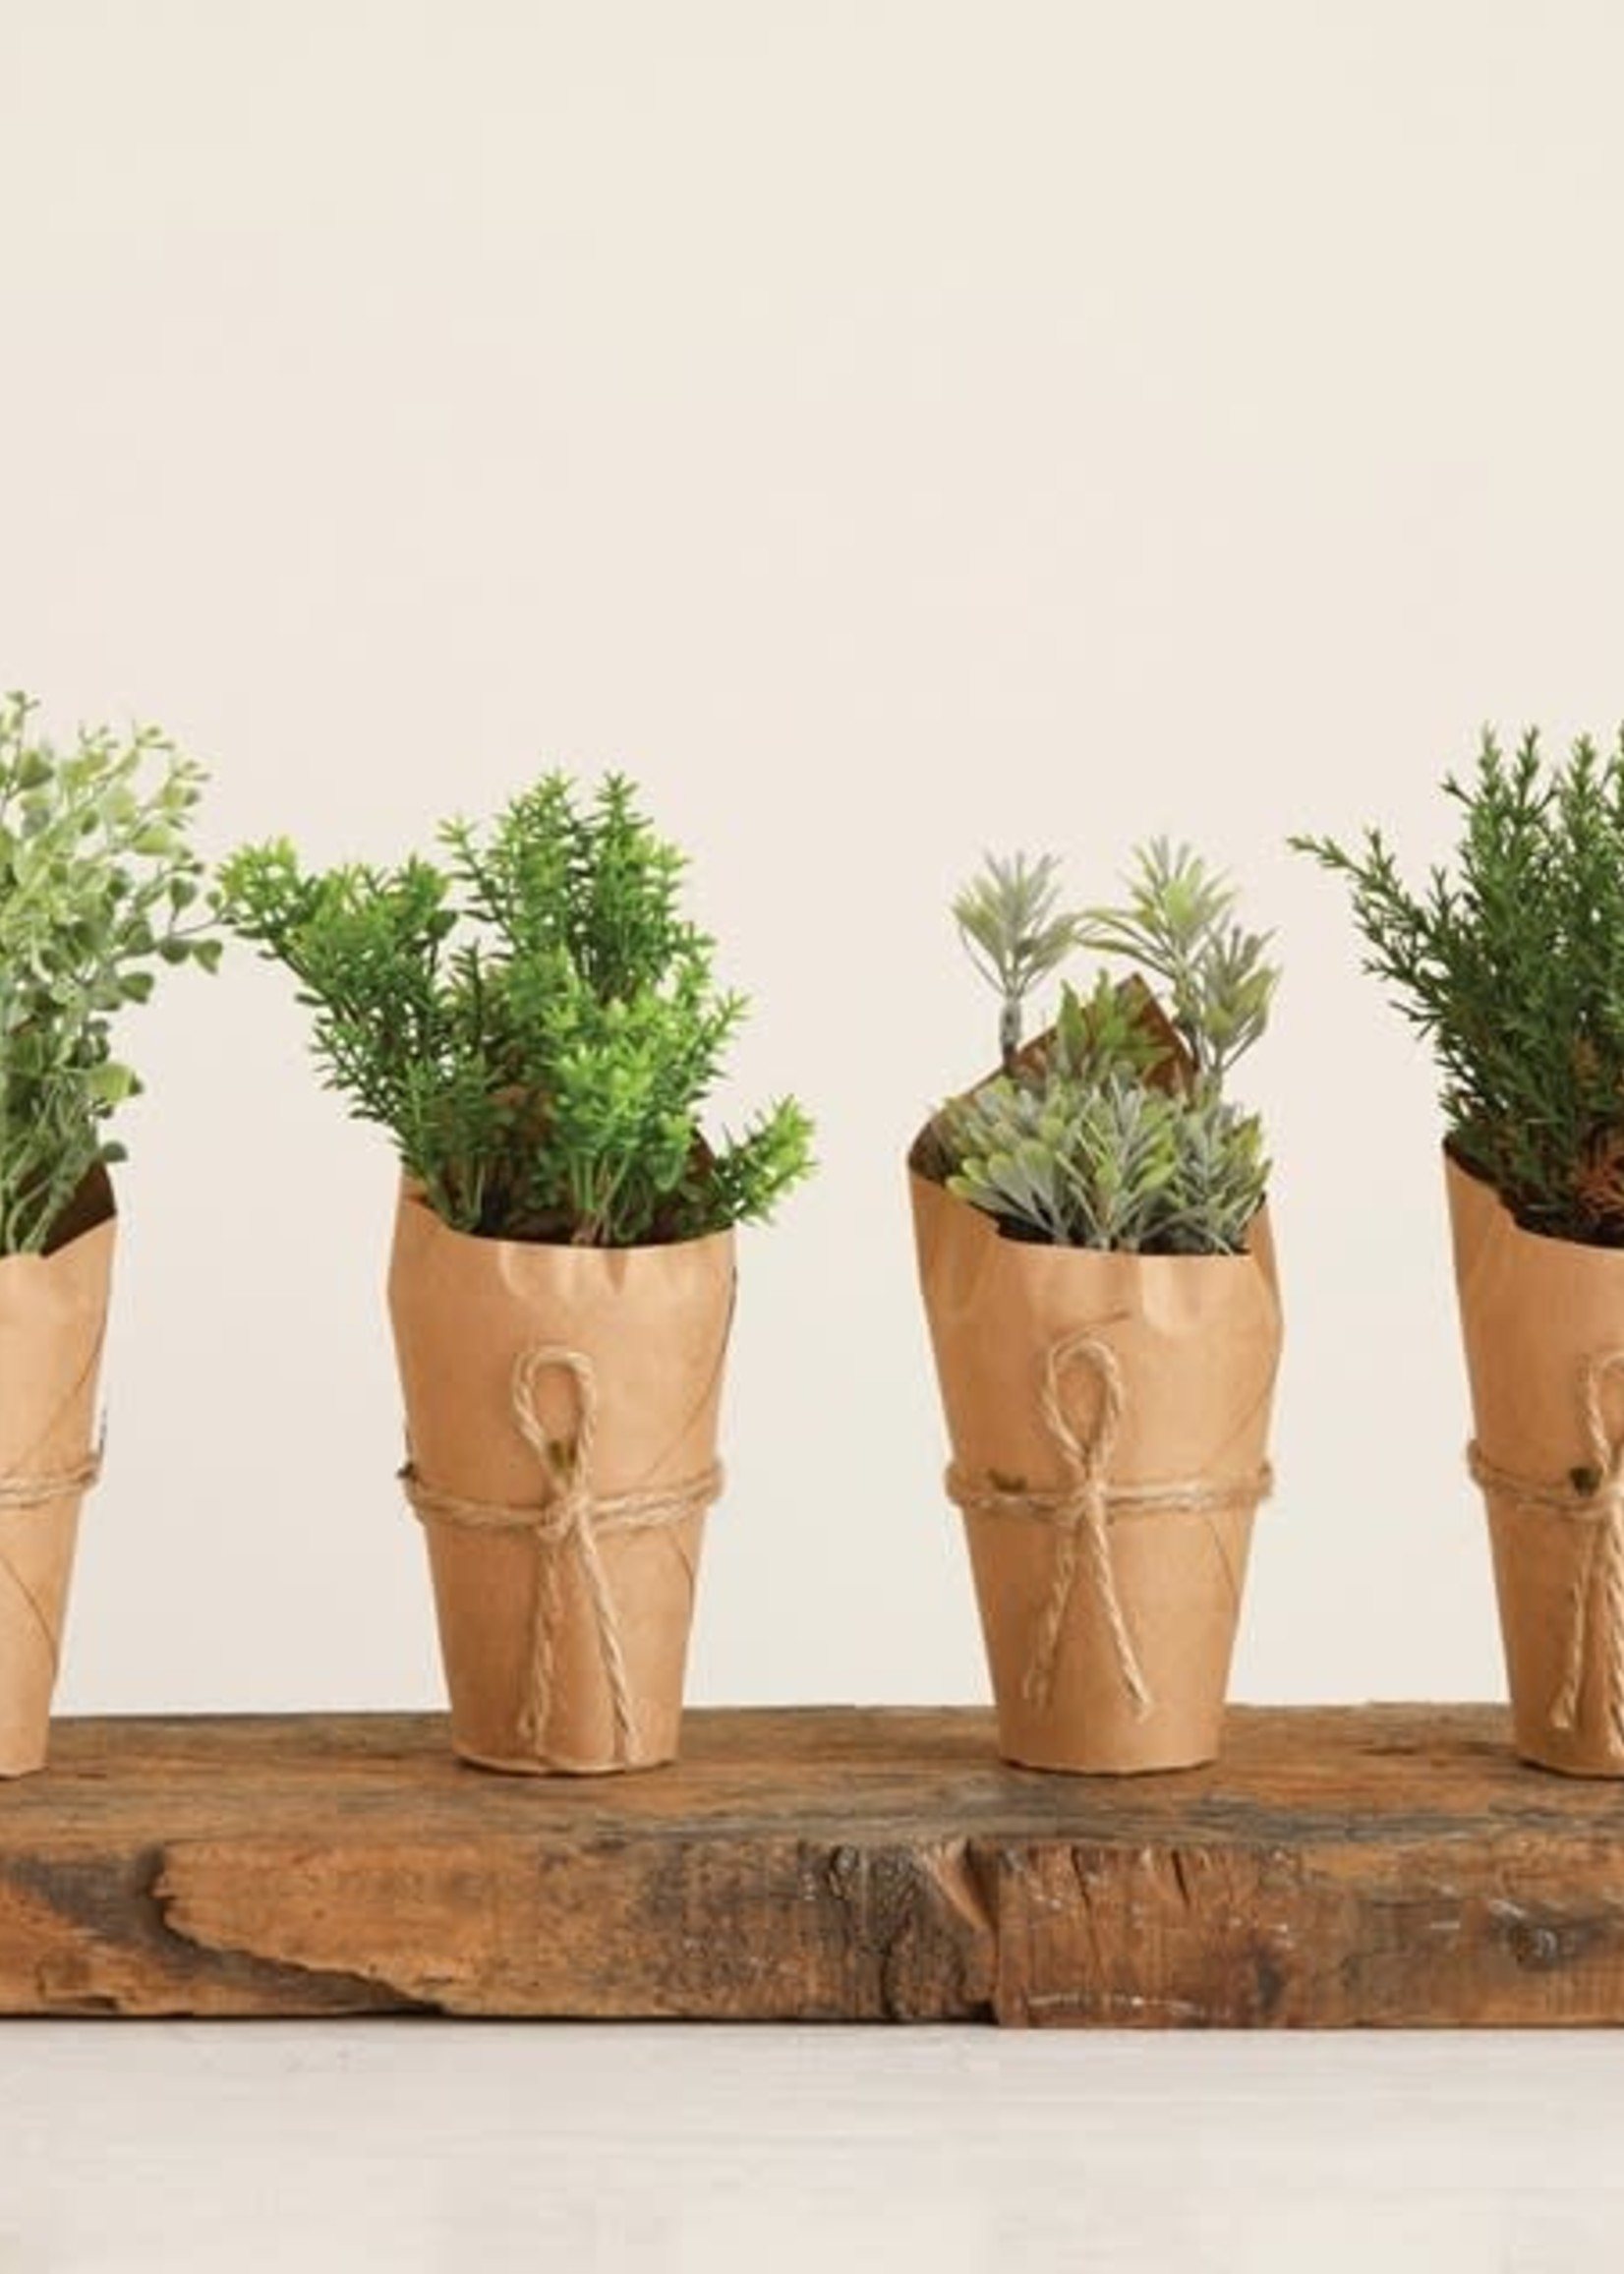 Artificial Plant In Paper Wrapped Pot